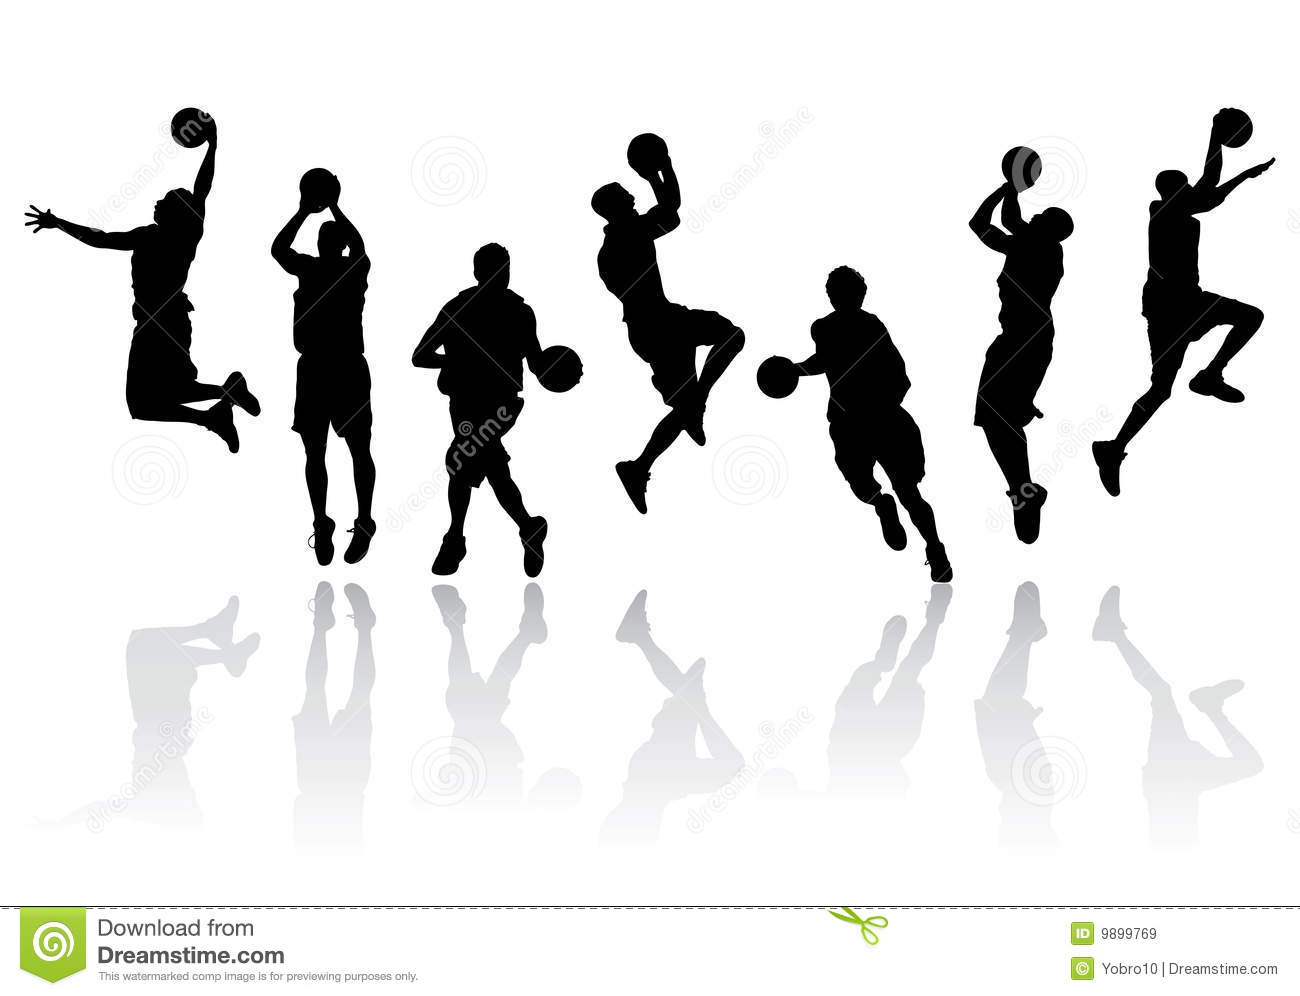 16 Basketball Silhouette Vector Free Images